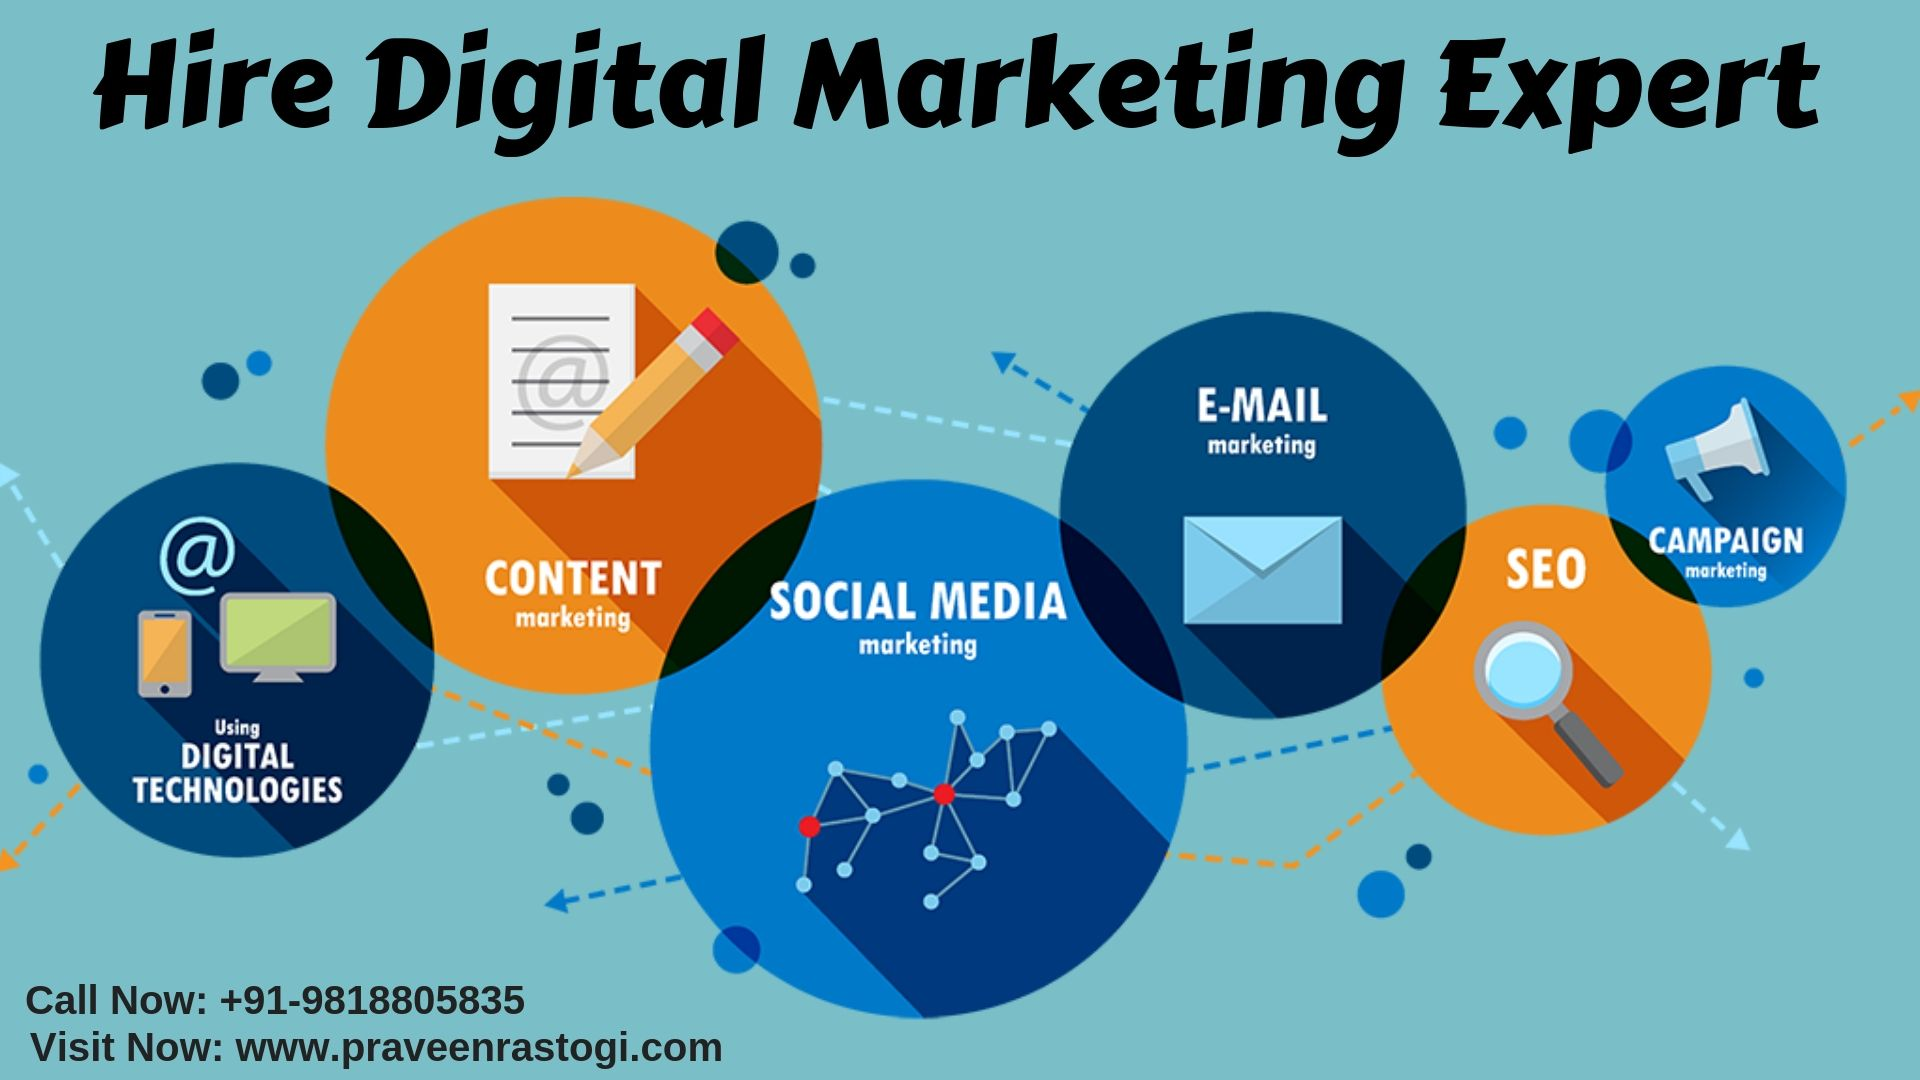 Hire digital marketing expert in USA for full-suite digital